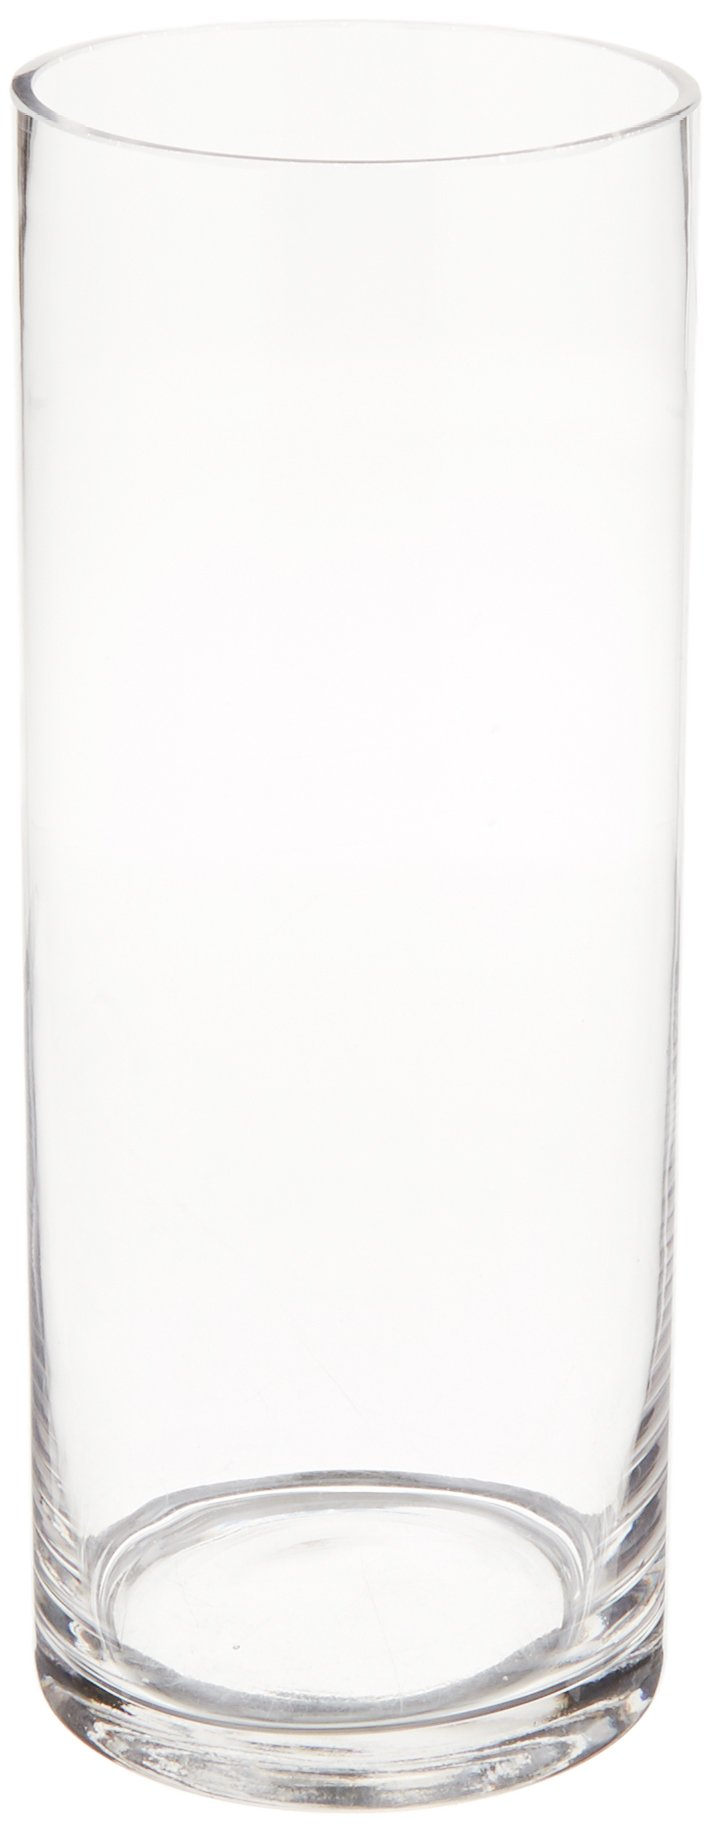 WGV Clear Cylinder Glass Vase, 4 by 10-Inch